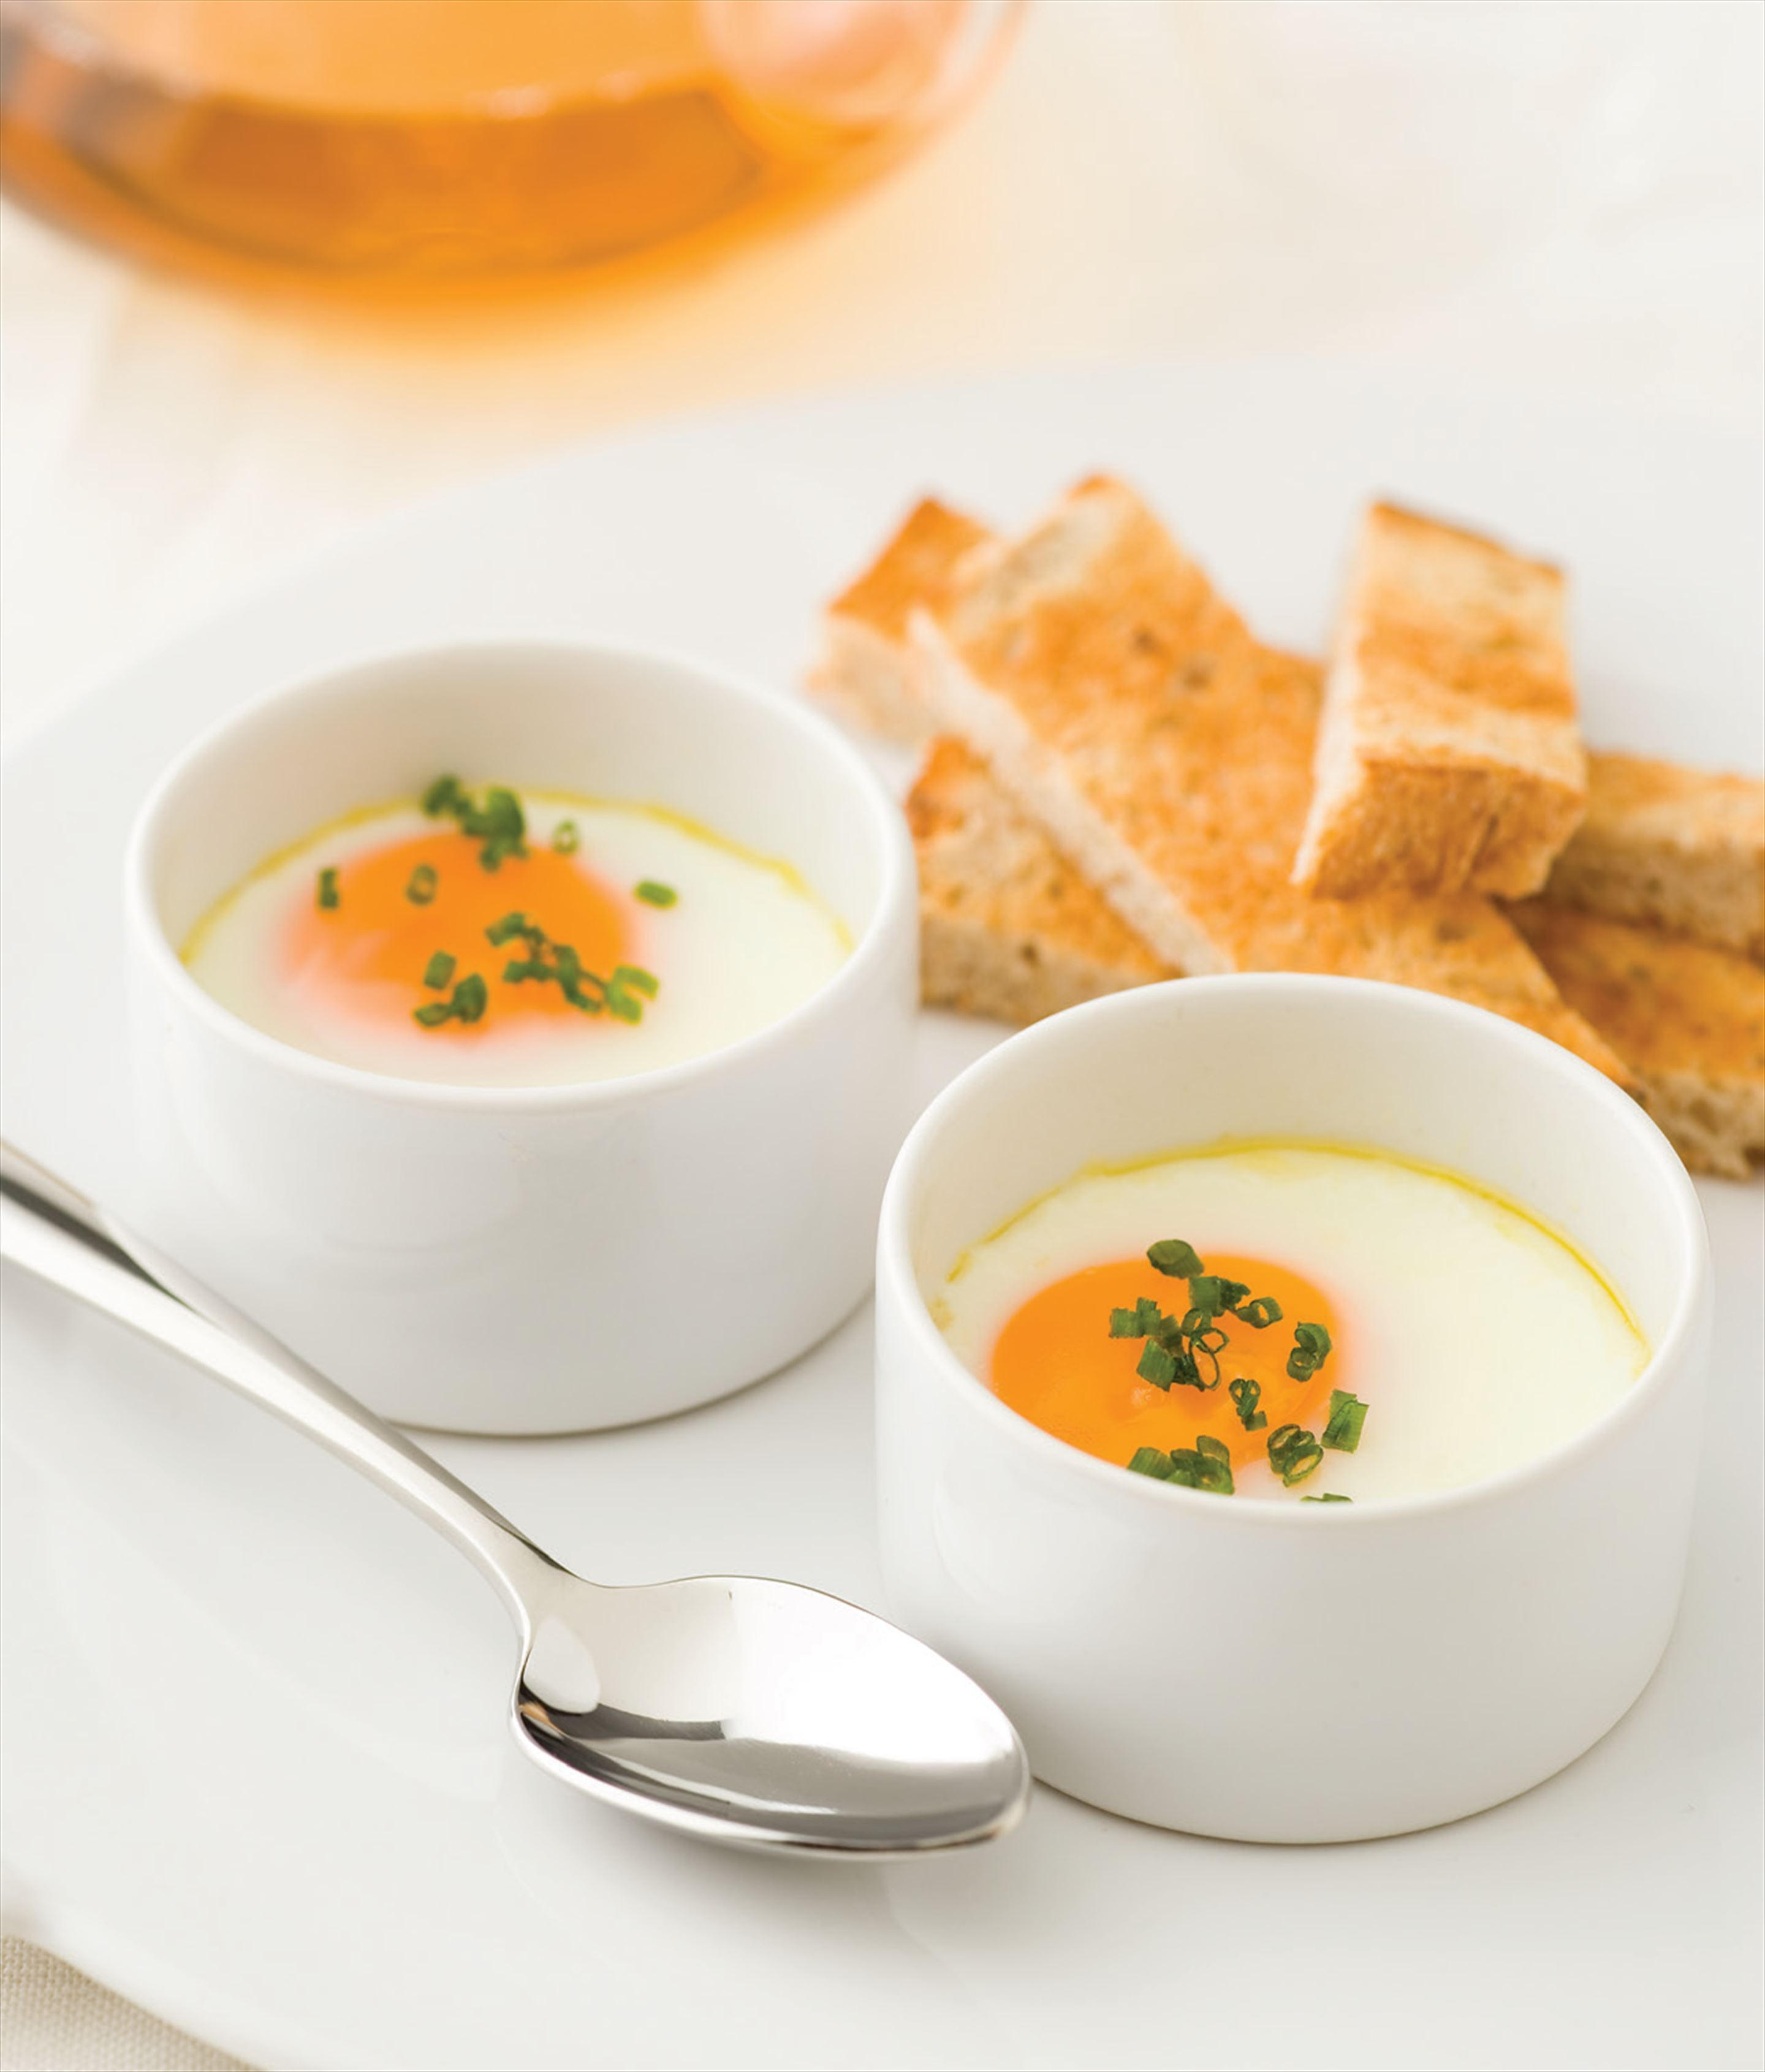 Eggs en cocotte with toast